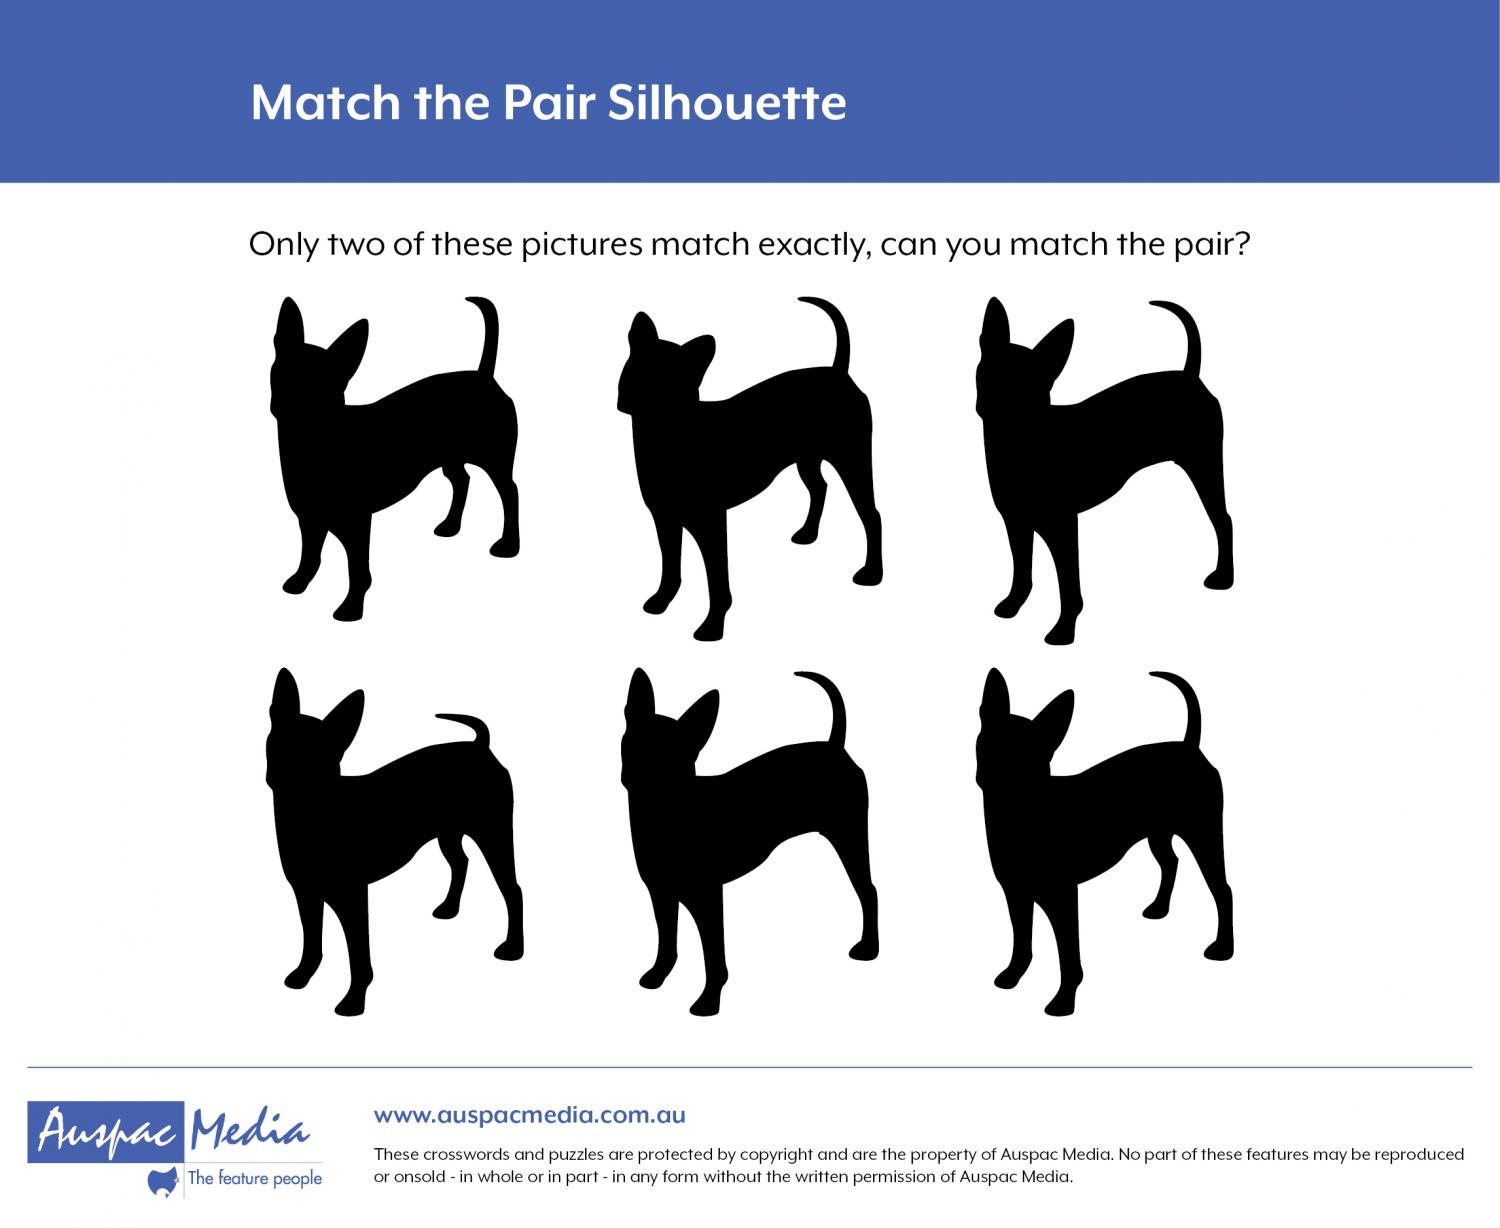 Thumbnail for Match the Pair Silhouette